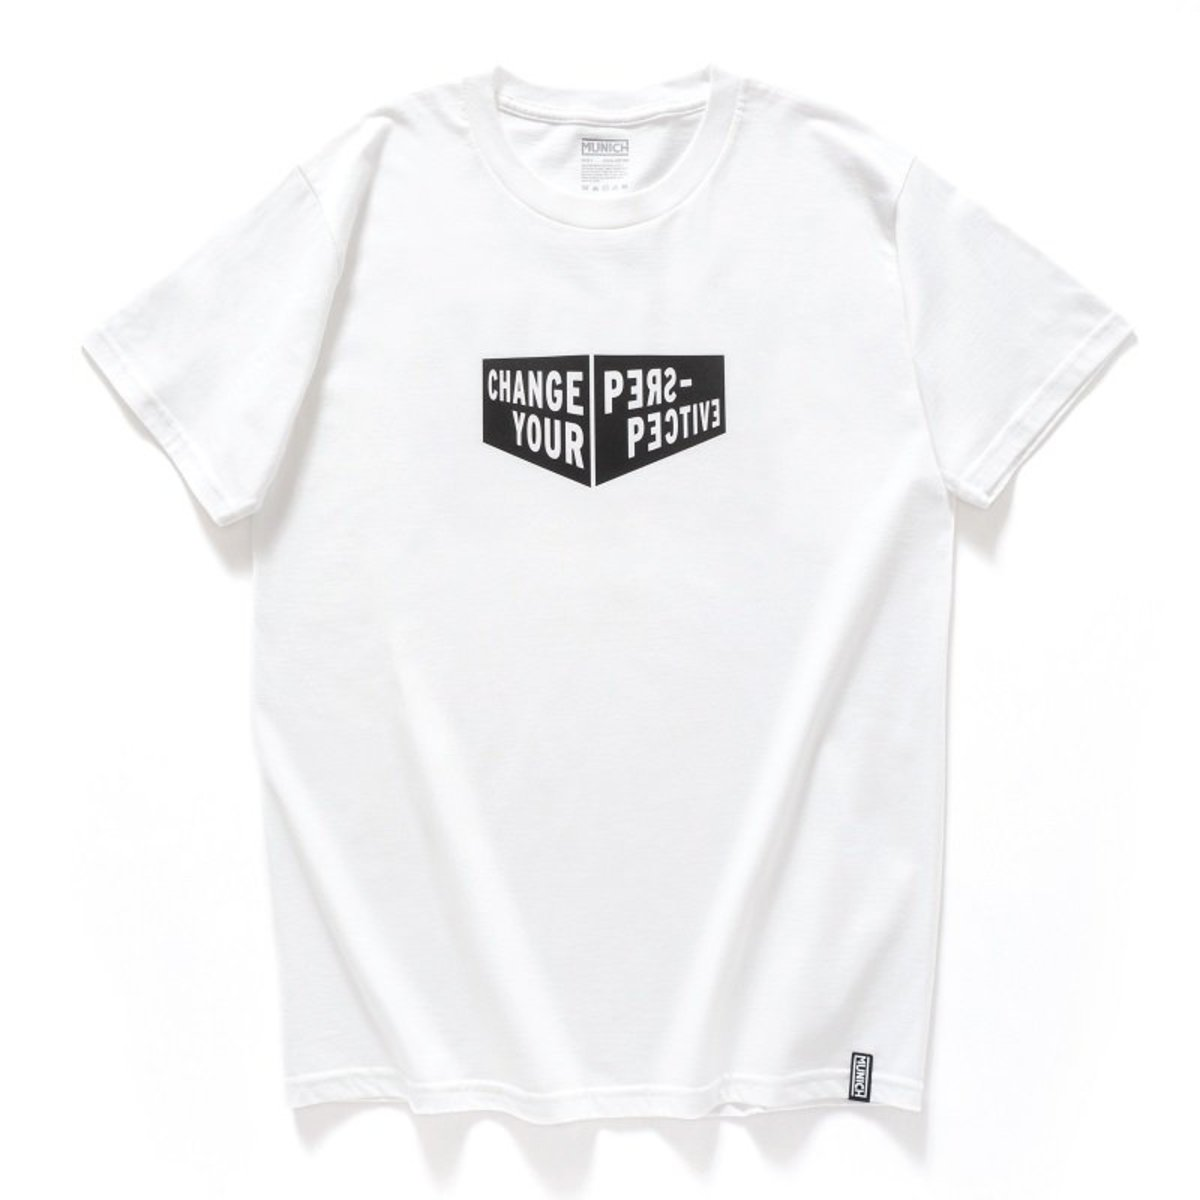 "【Official】- Spain High-density Print Tee, ""Change Your Perspective"", White (2 Colors Available)"